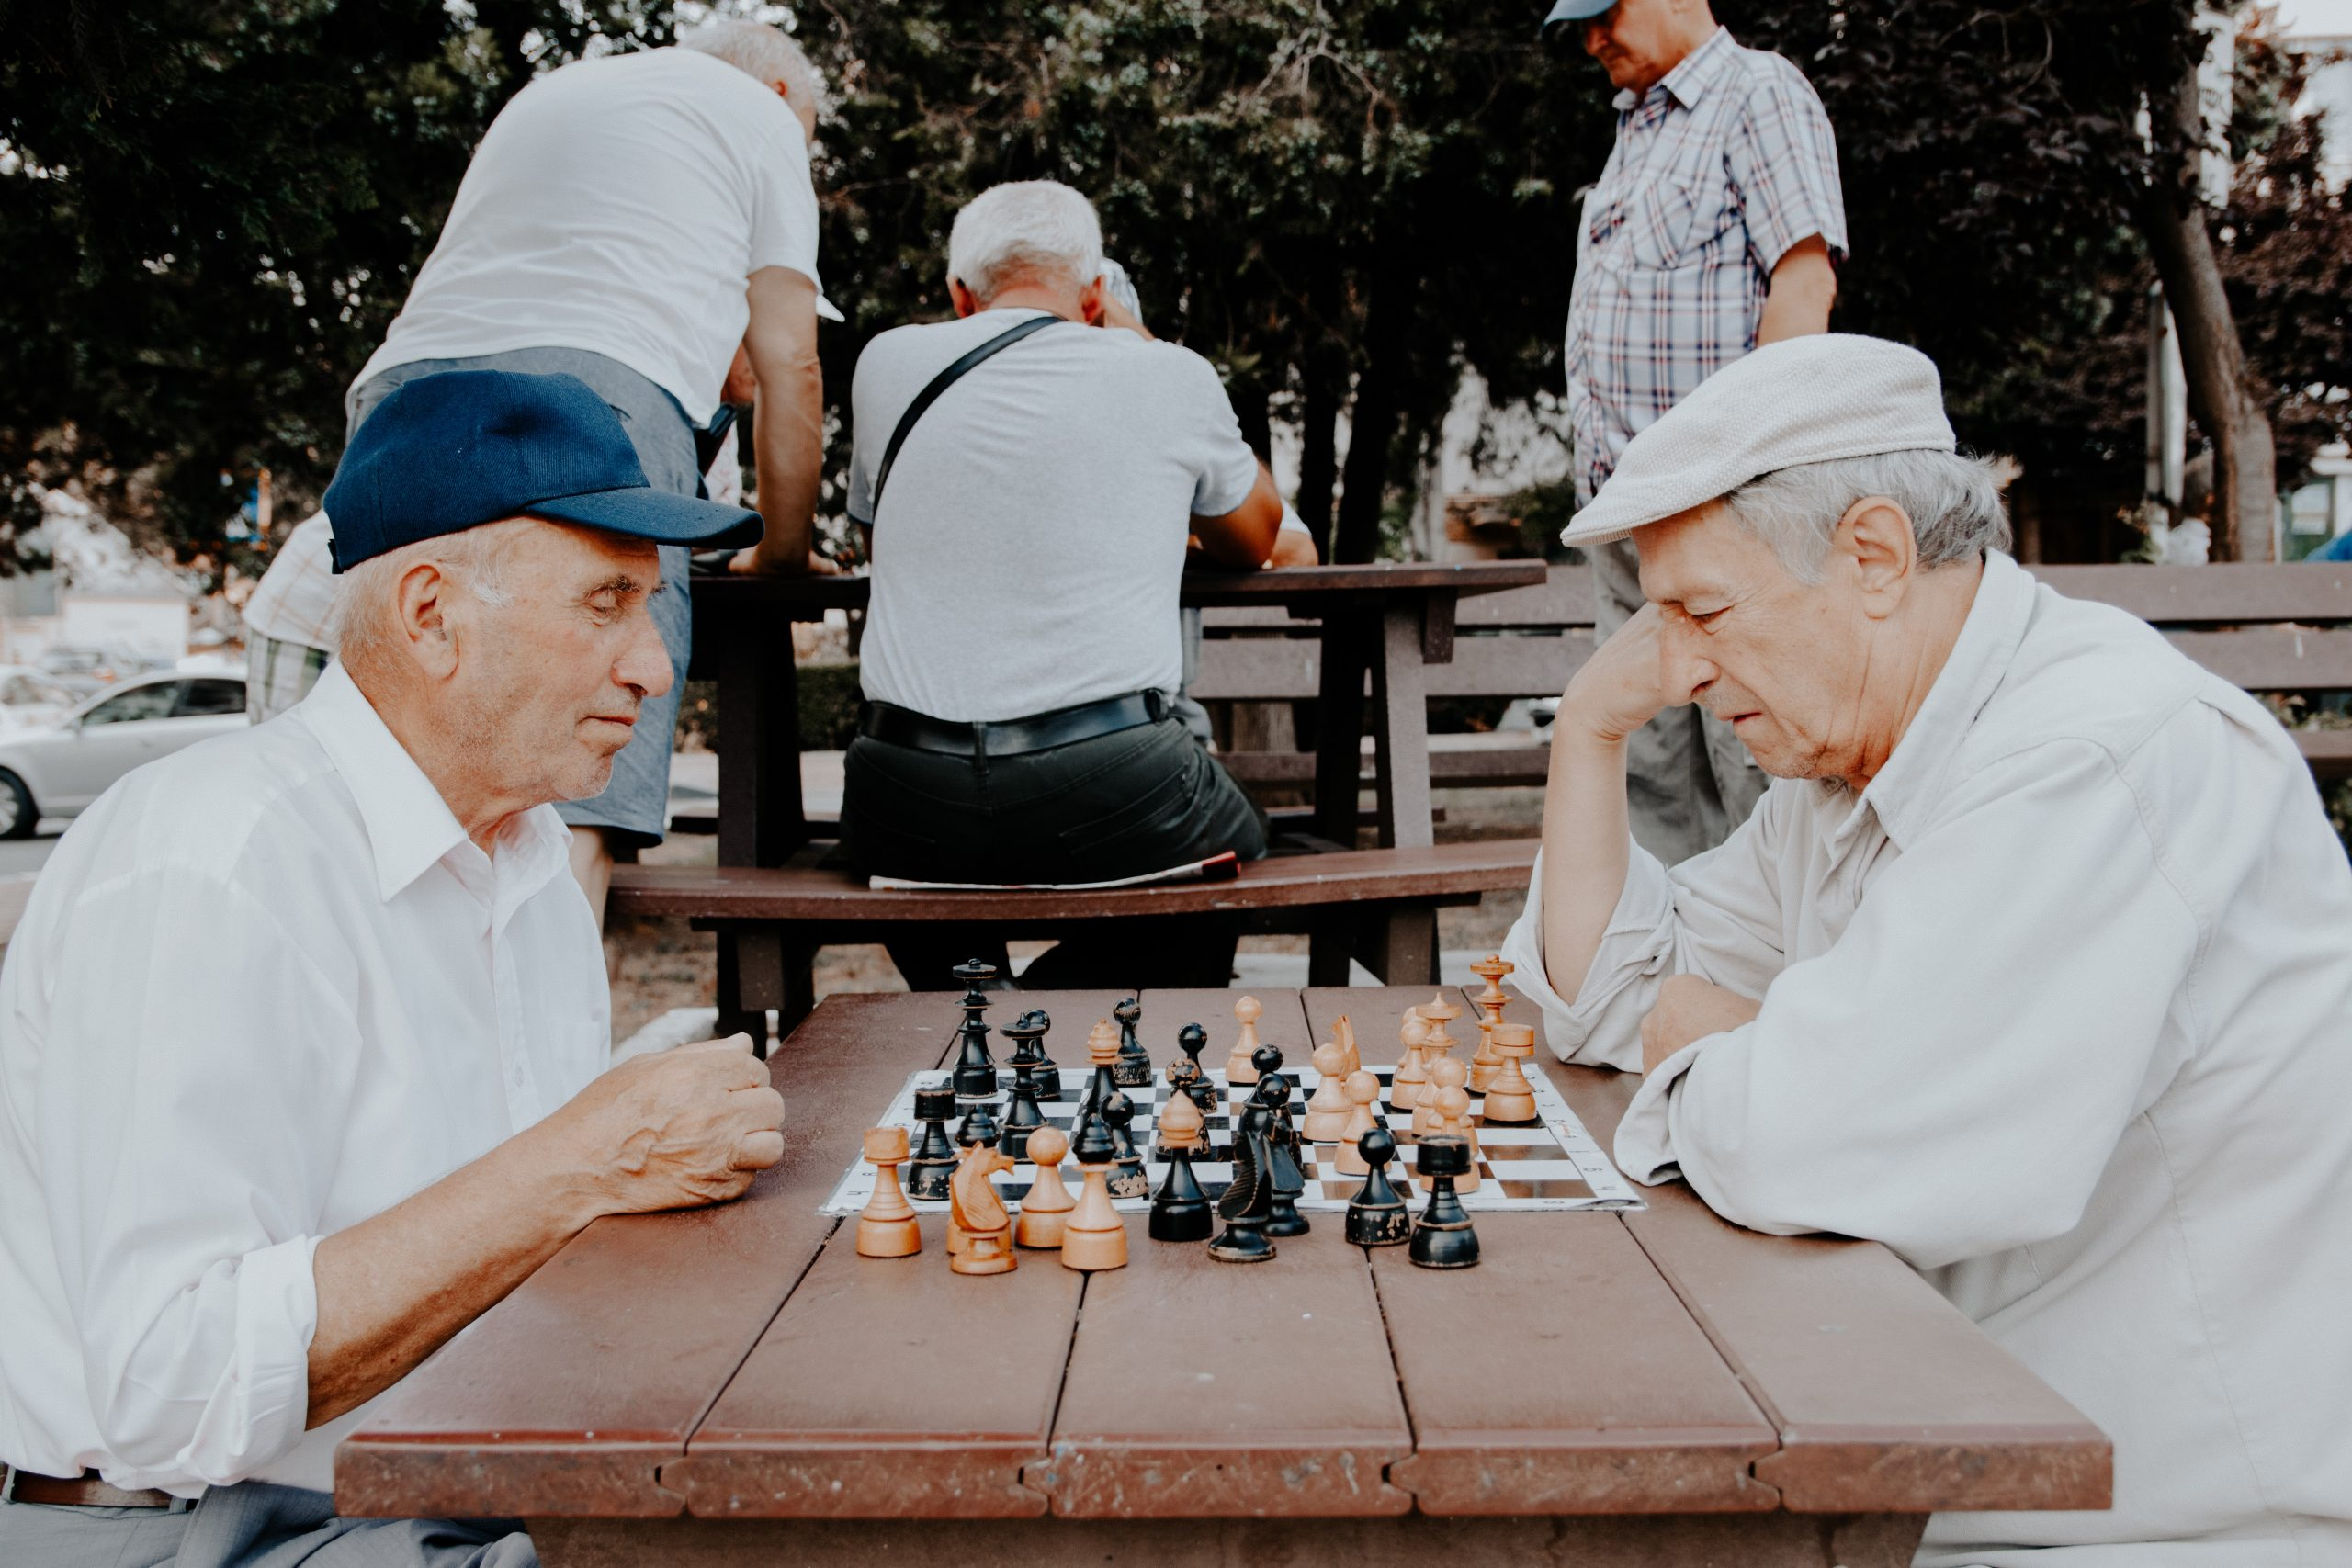 At a picnic table at a park, two older men in white dress shirts play a game of chess. Five senior citizens can be seen convening at another picnic table in the background.